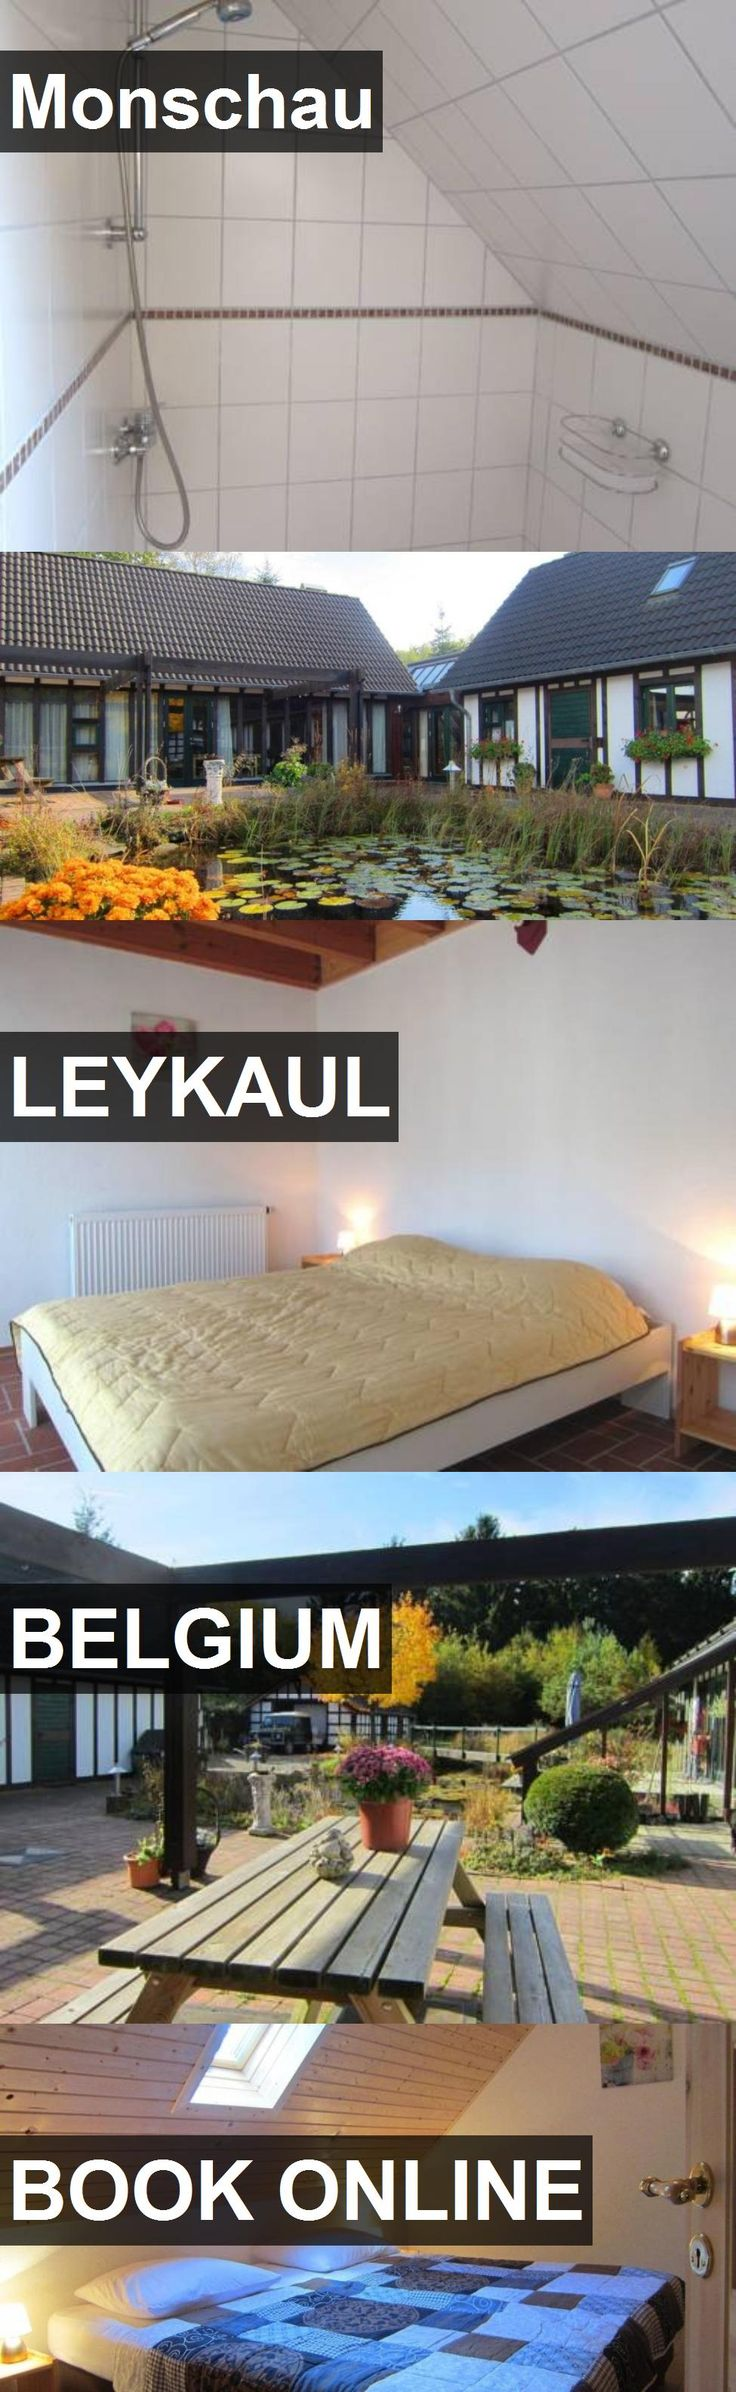 Hotel Monschau in Leykaul, Belgium. For more information, photos, reviews and best prices please follow the link. #Belgium #Leykaul #travel #vacation #hotel